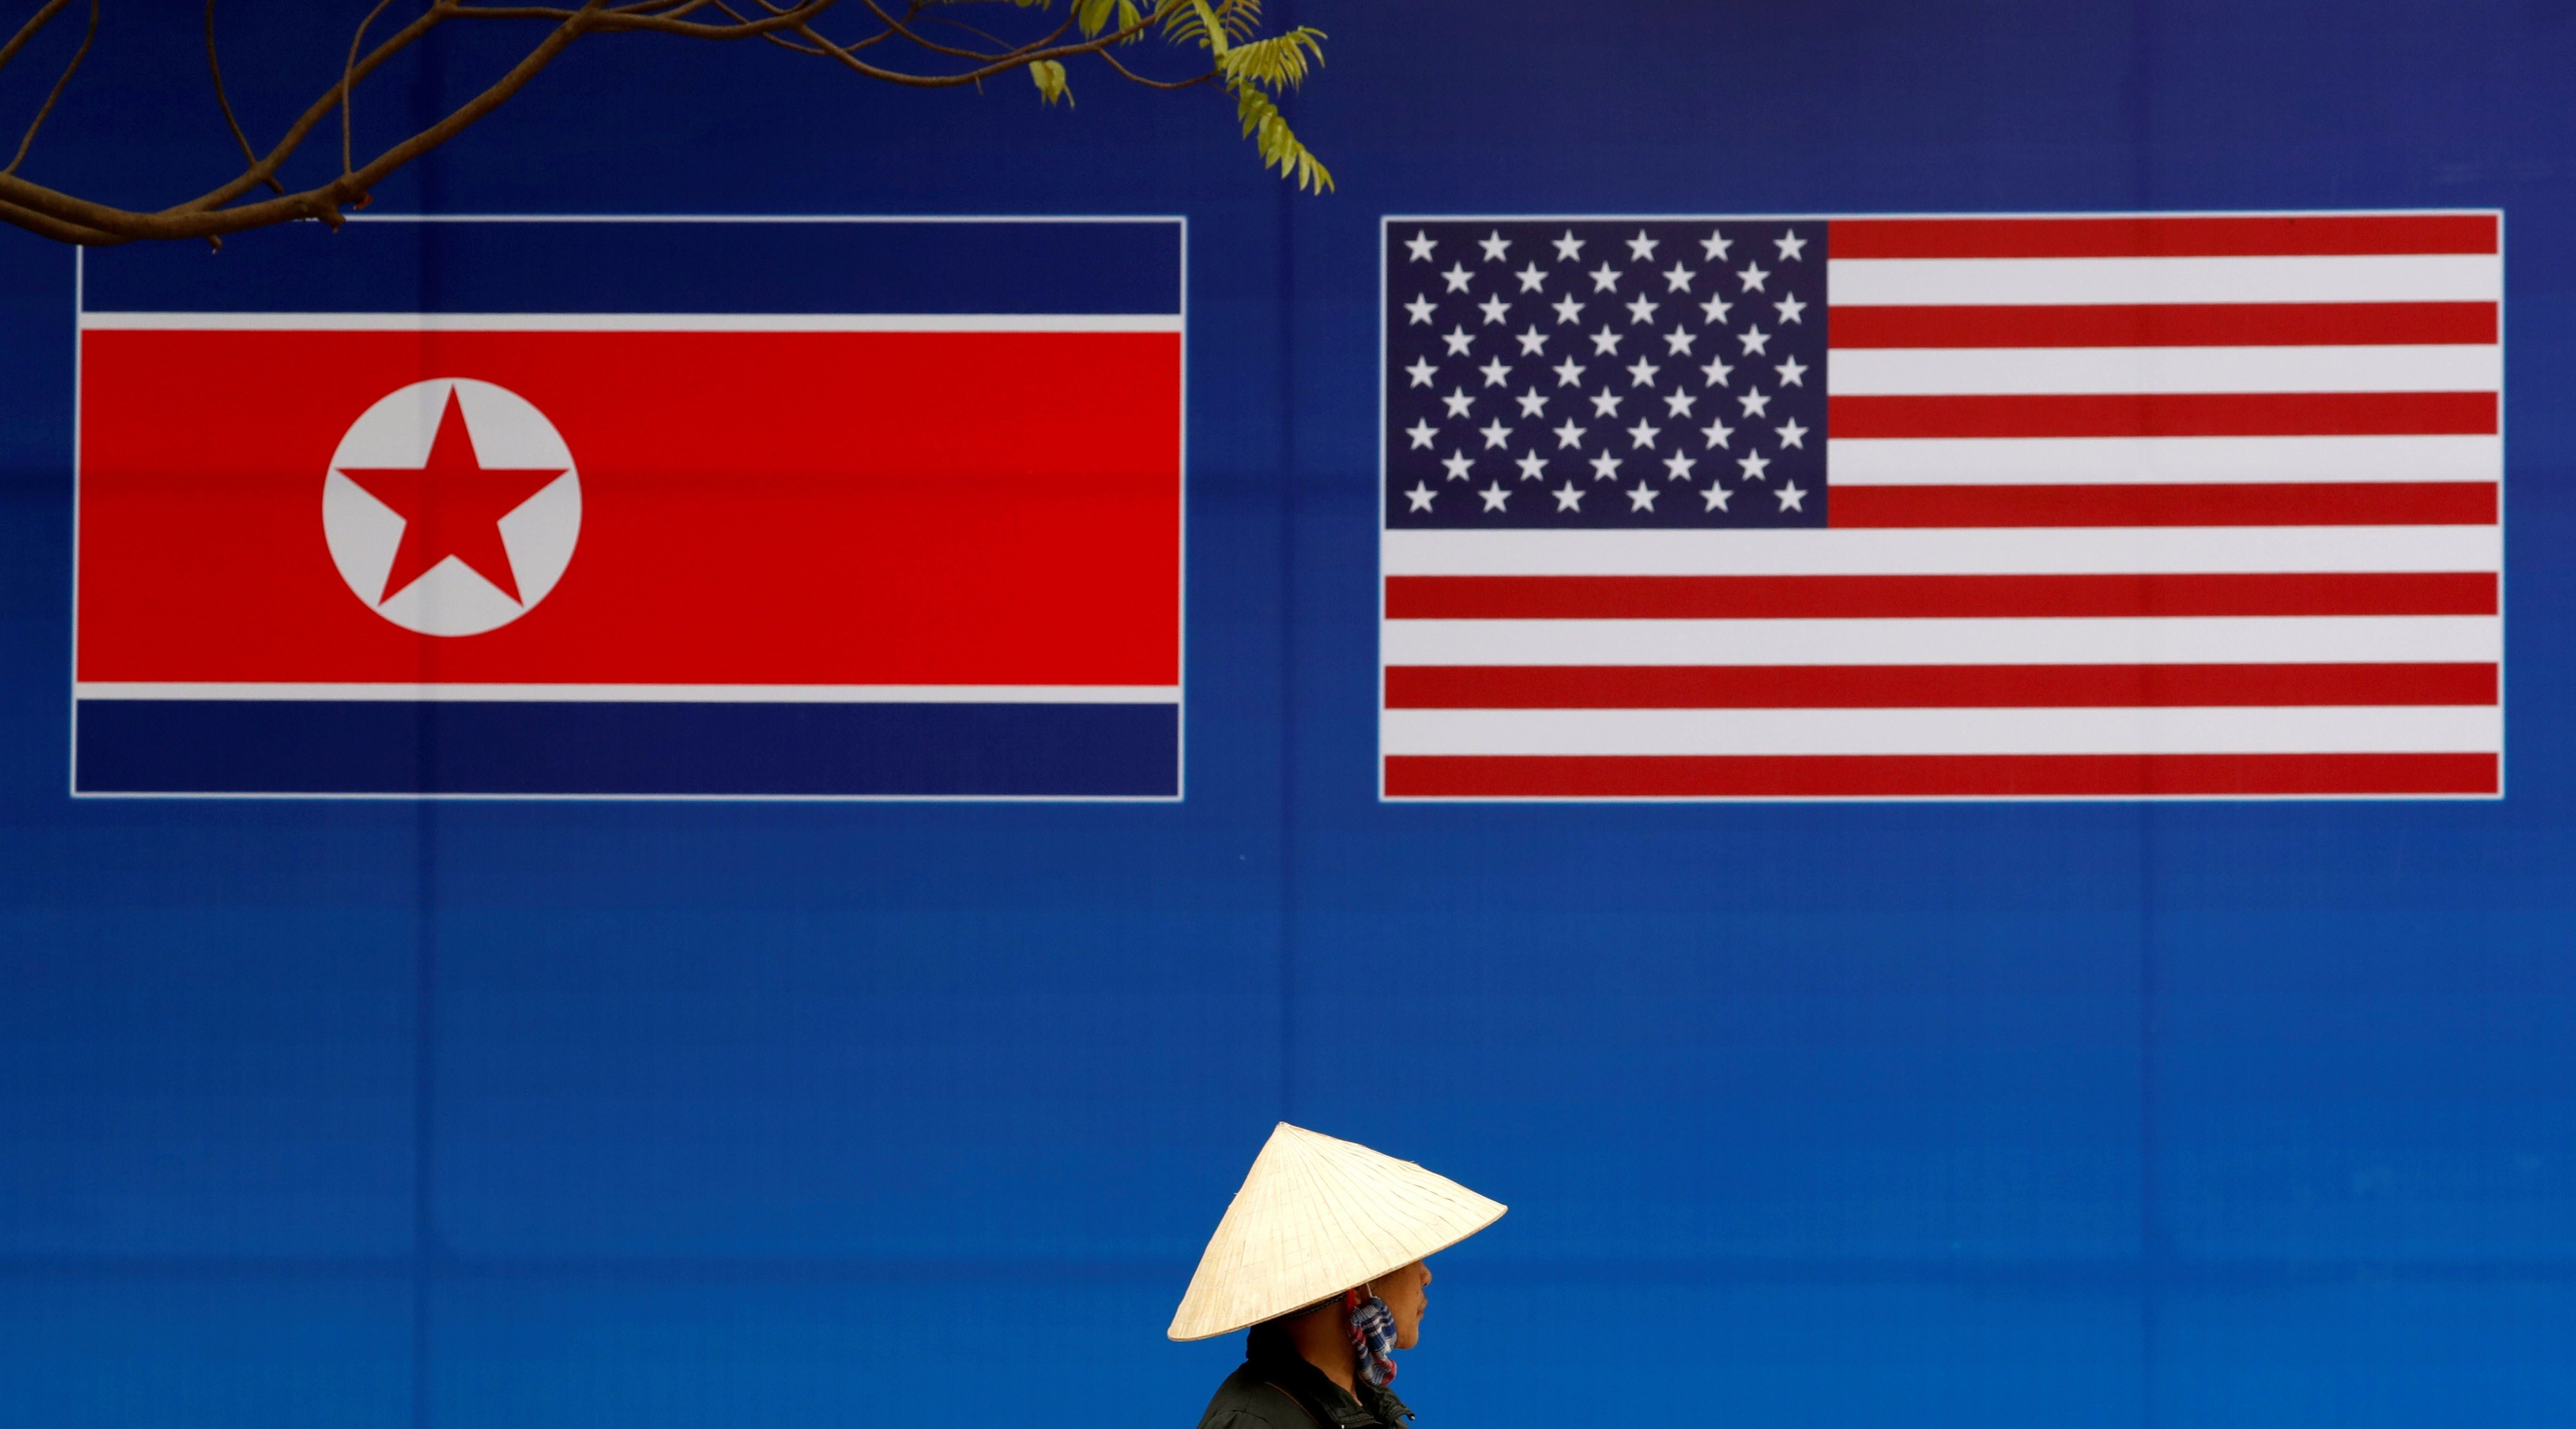 A person walks past a banner showing North Korean and U.S. flags ahead of the North Korea-U.S. summit in Hanoi, Vietnam